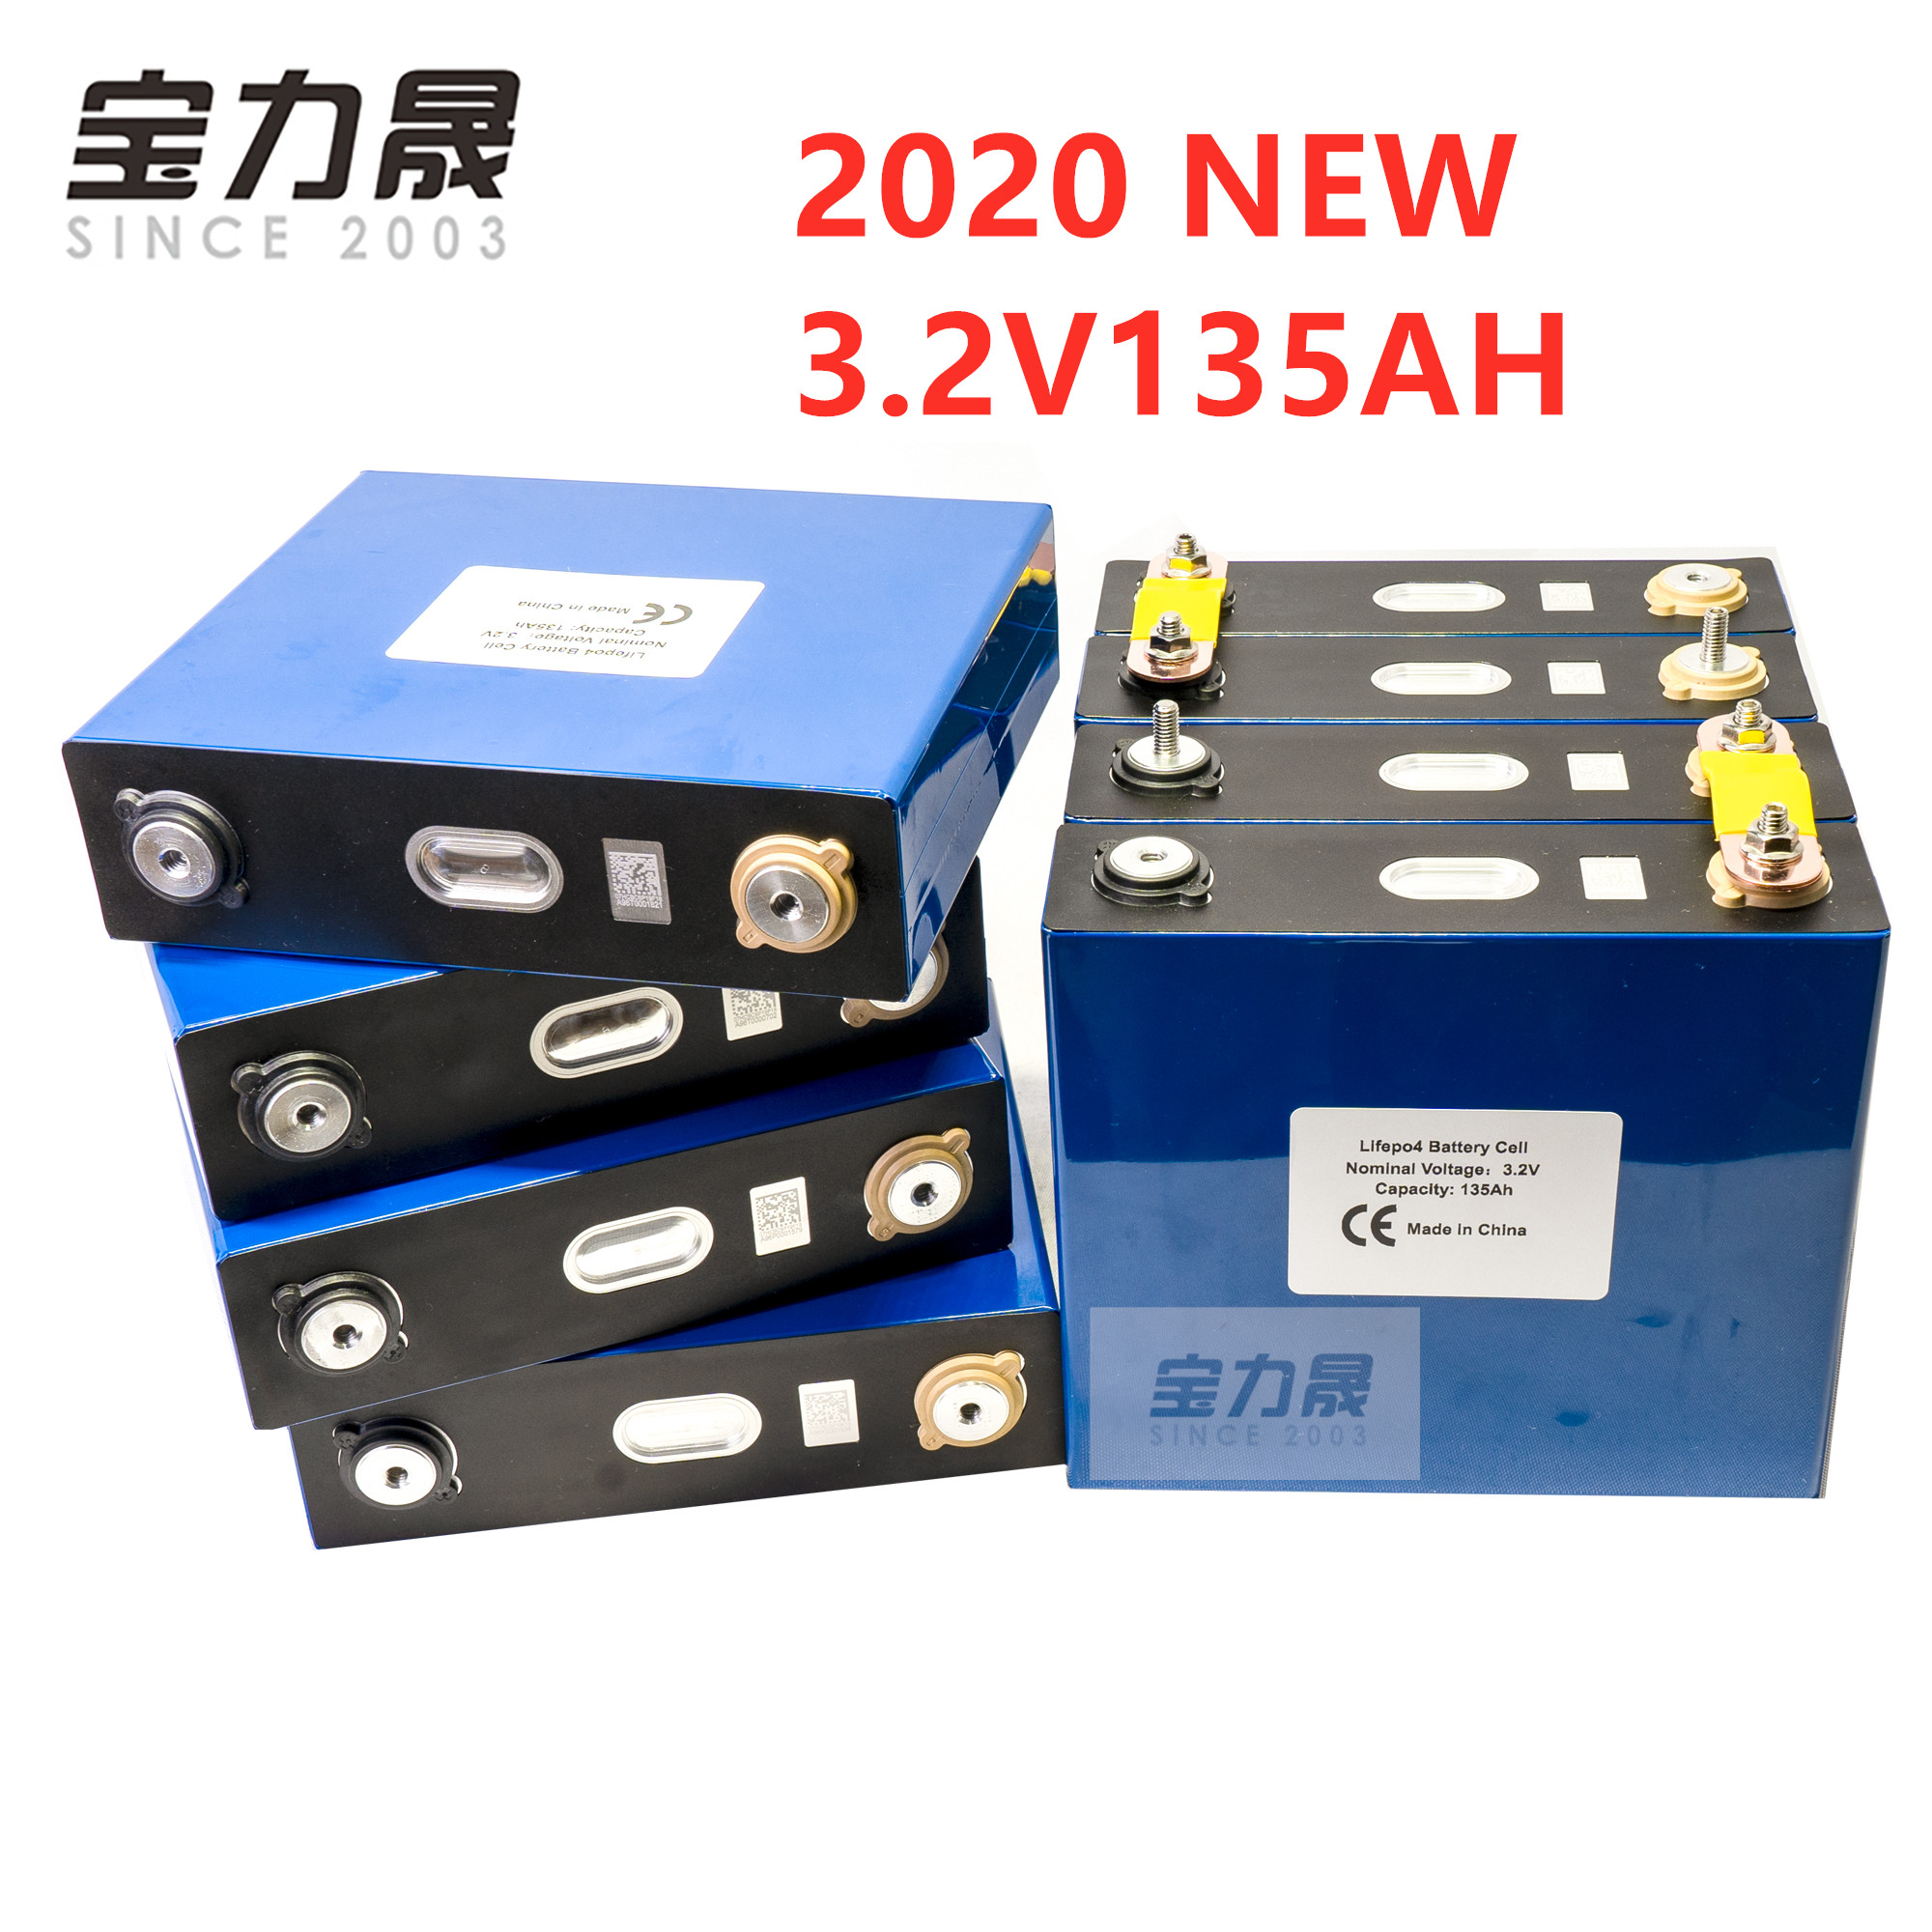 New 8PCS 3.2V 135AH Lifepo4 Rechargeable Battery Lithium Iron Phosphate Cell Solar 24V 12V Cells Not 120Ah 150ah EU US TAX FREE